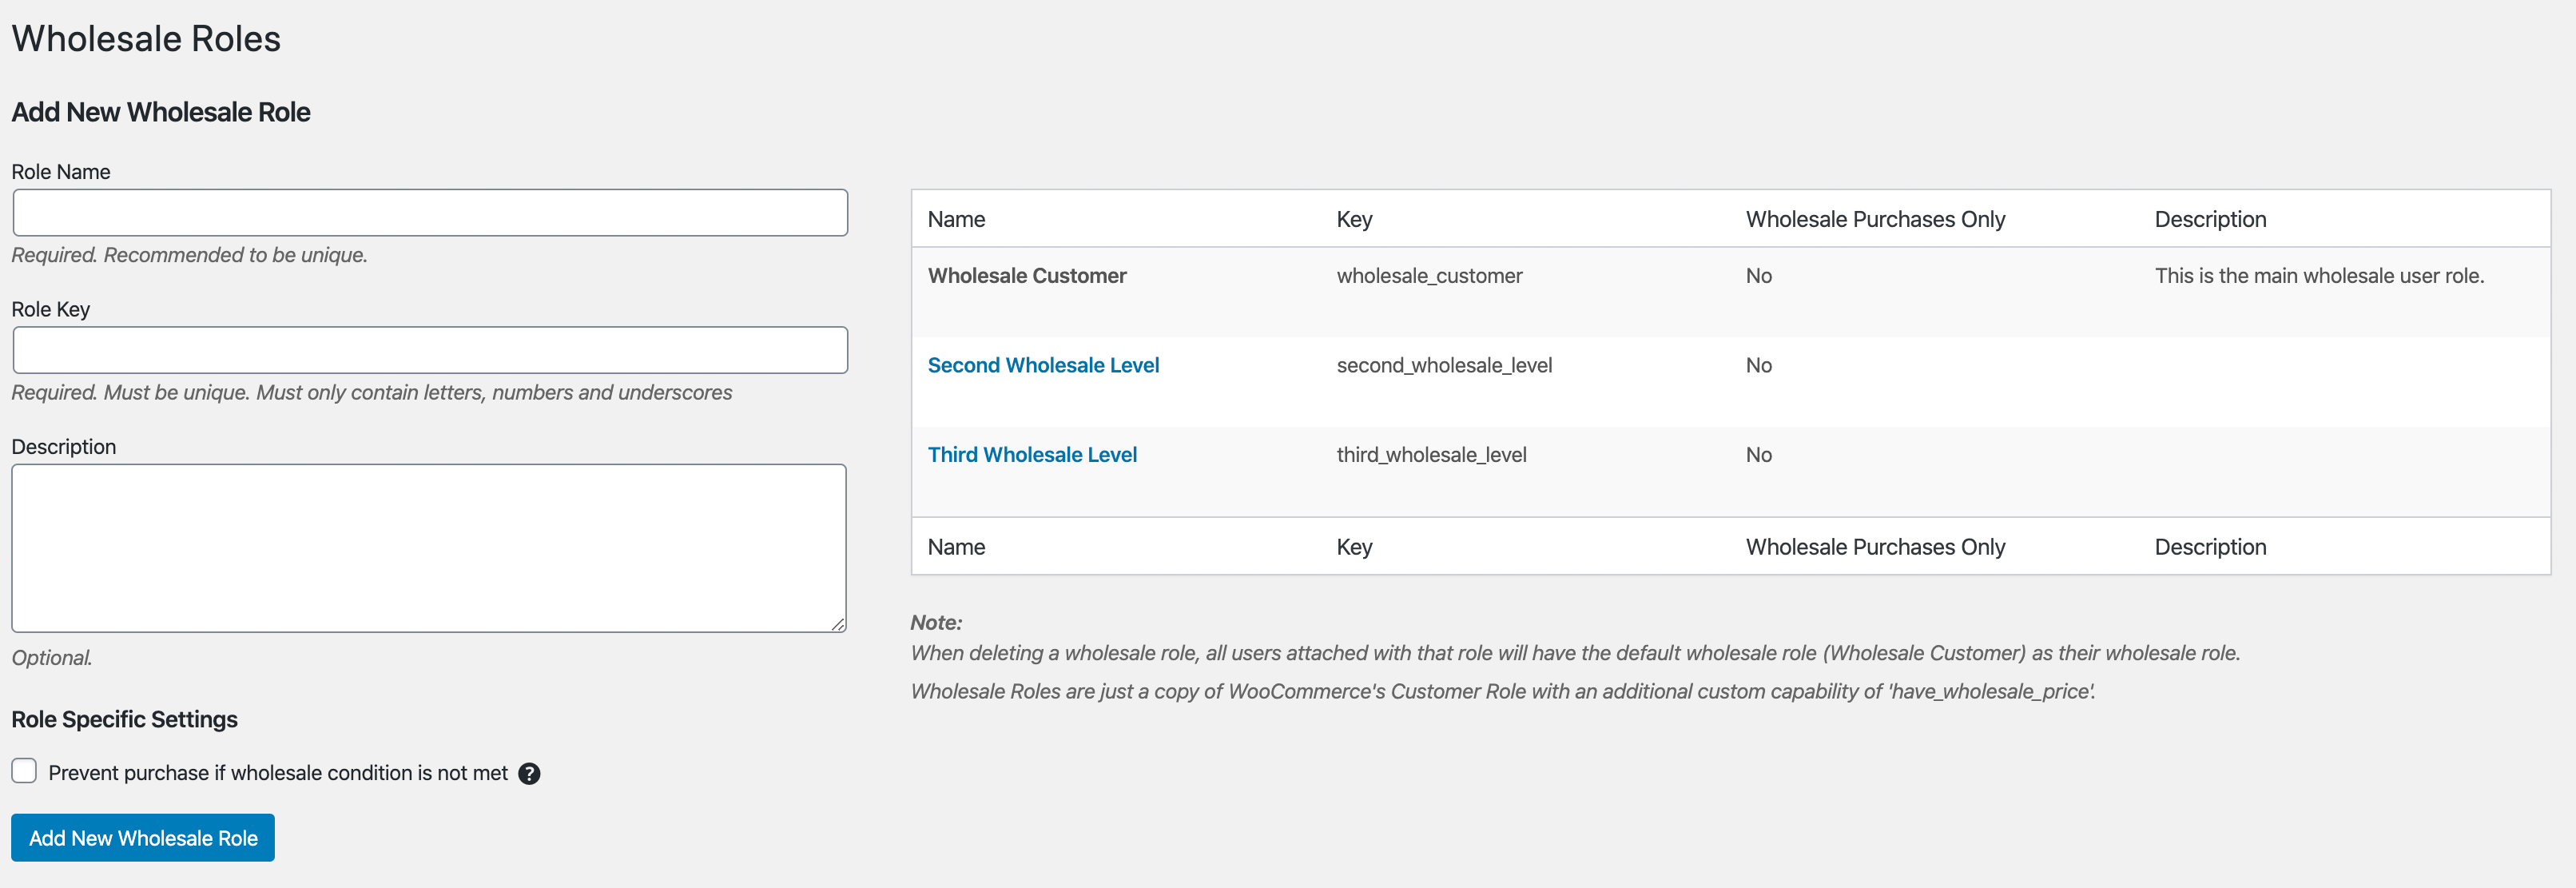 Adding Wholesale Roles In WooCommerce With Wholesale Suite